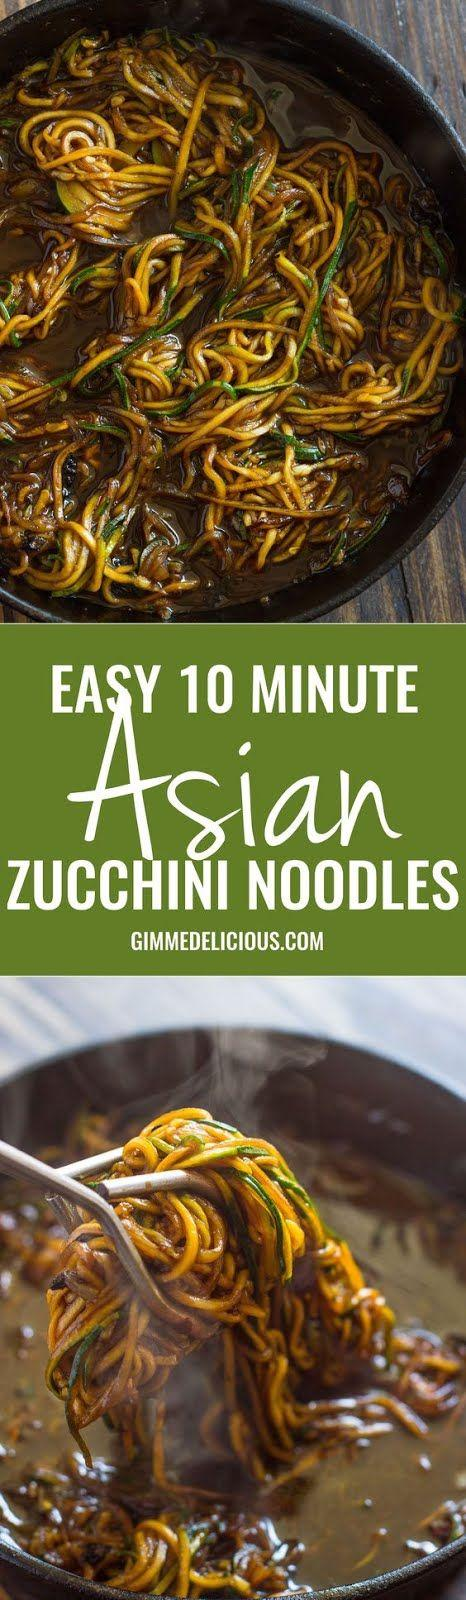 Eat Yourself Skinny With Zoodles. 10 Minute Asian Zucchini noodles from Gimme Delicious!